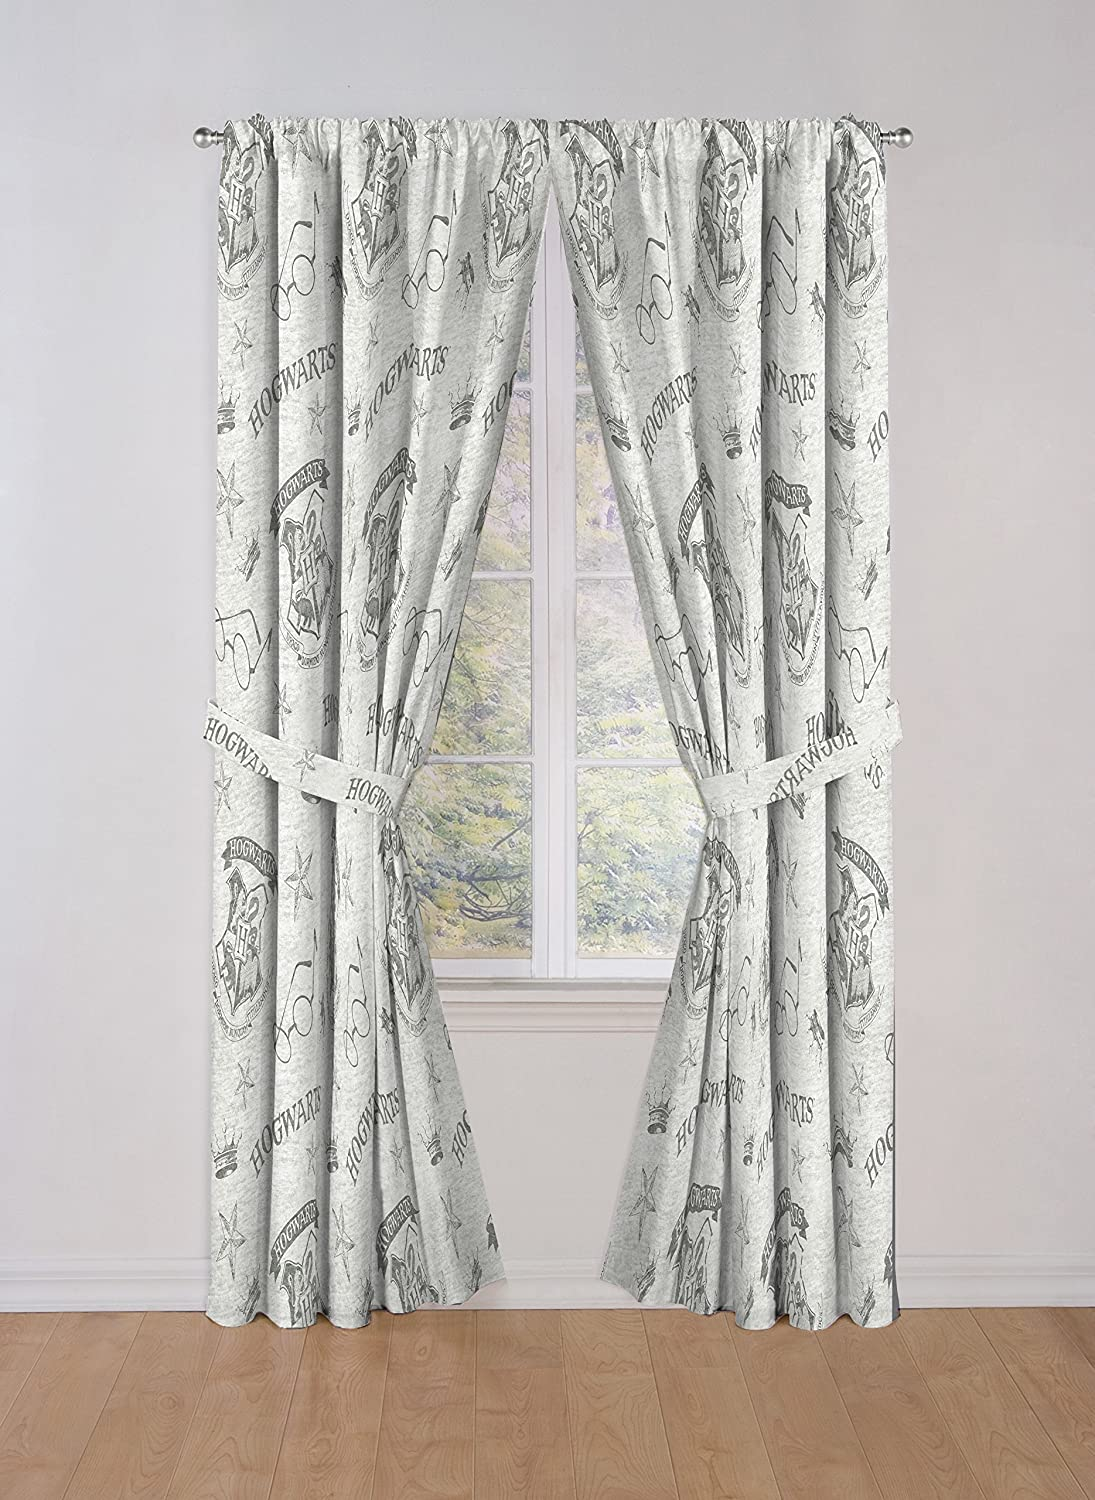 """Jay Franco Harry Potter Spellbound 84"""" Drapes - Beautiful Room Décor & Easy Set Up, Bedding Features Hogwarts Logo - Curtains Include 2 Tiebacks, 4 Piece Set (Official Harry Potter Product)"""